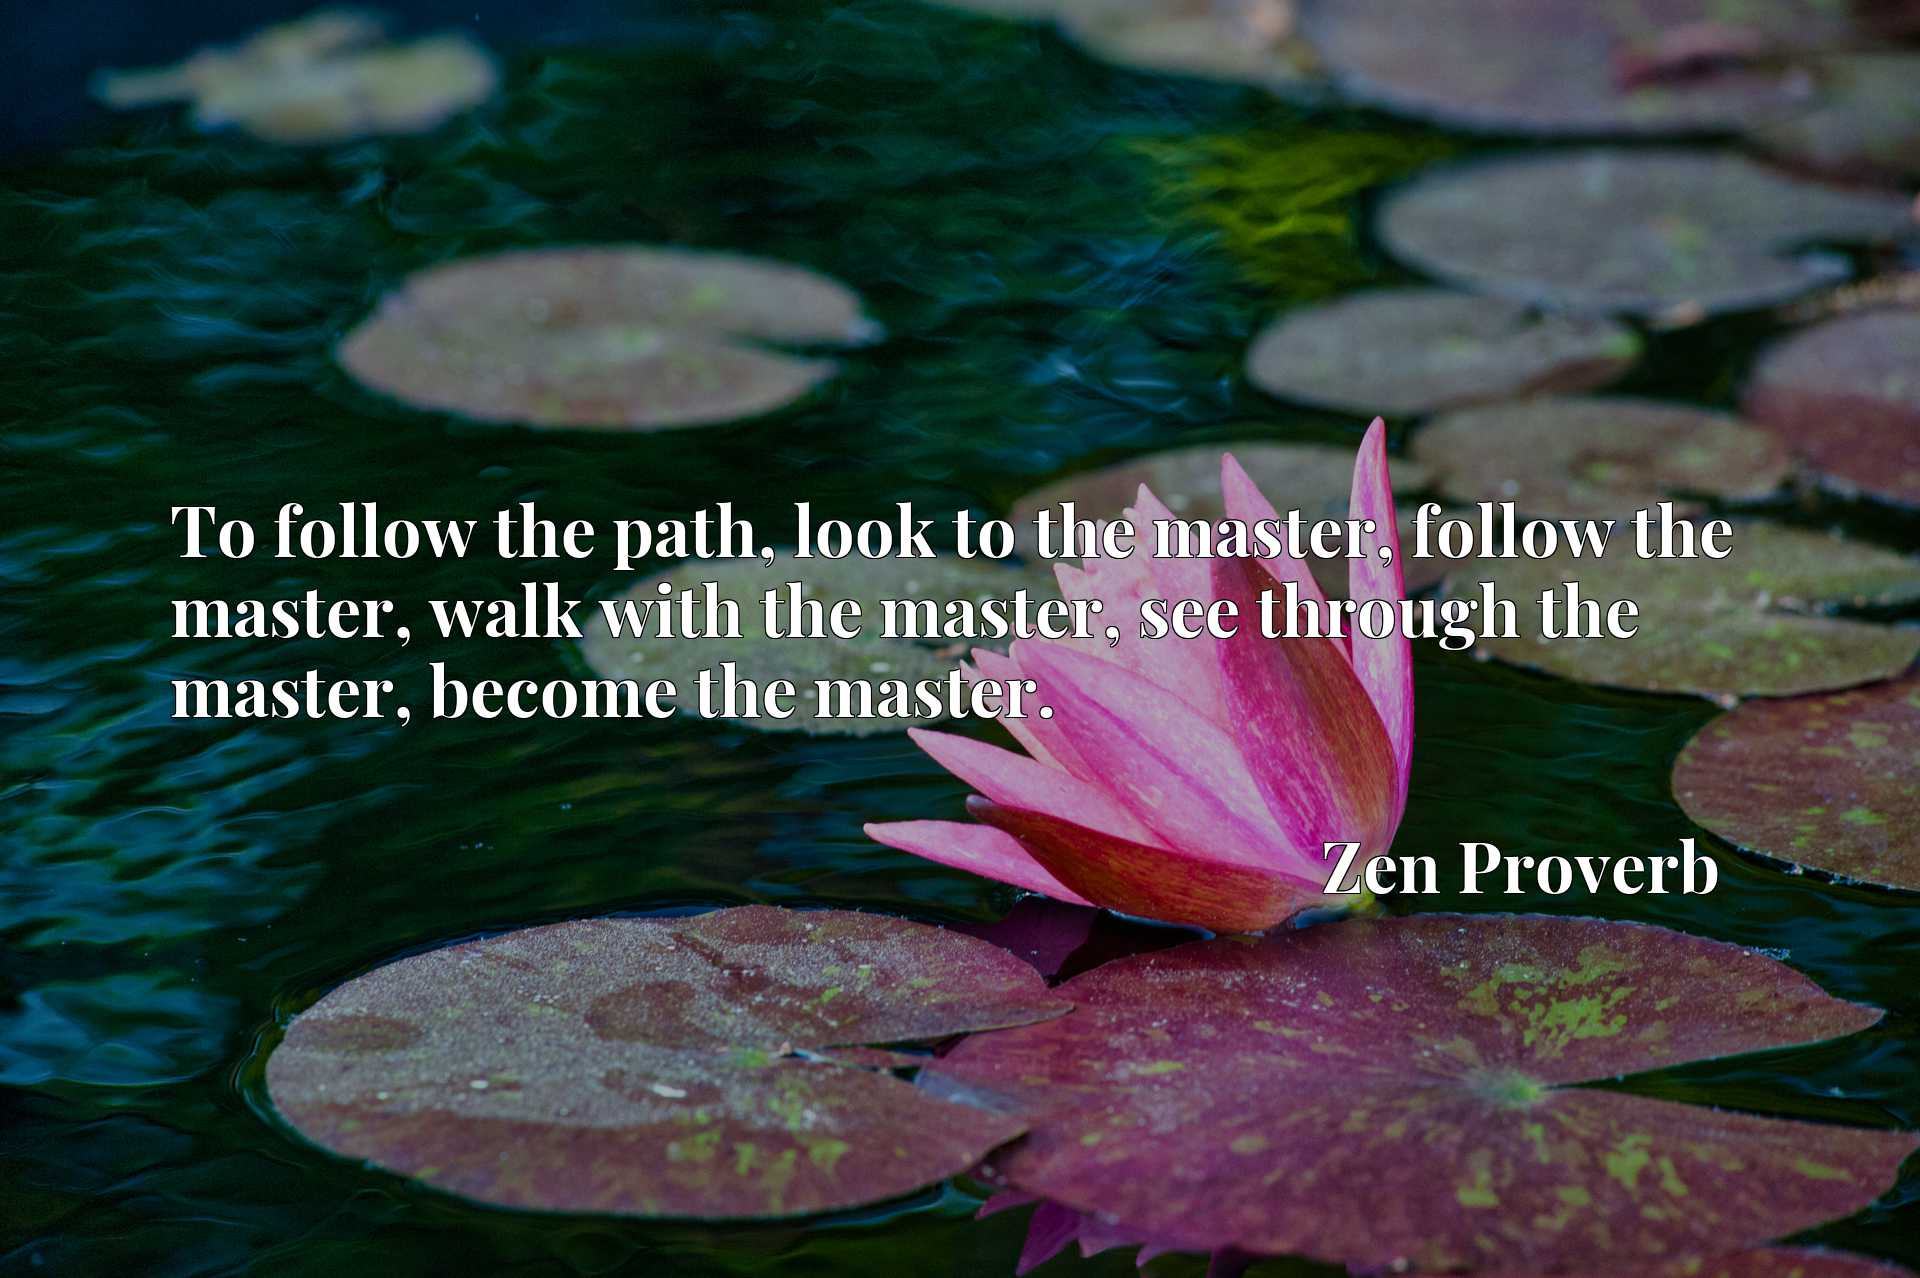 To follow the path, look to the master, follow the master, walk with the master, see through the master, become the master.